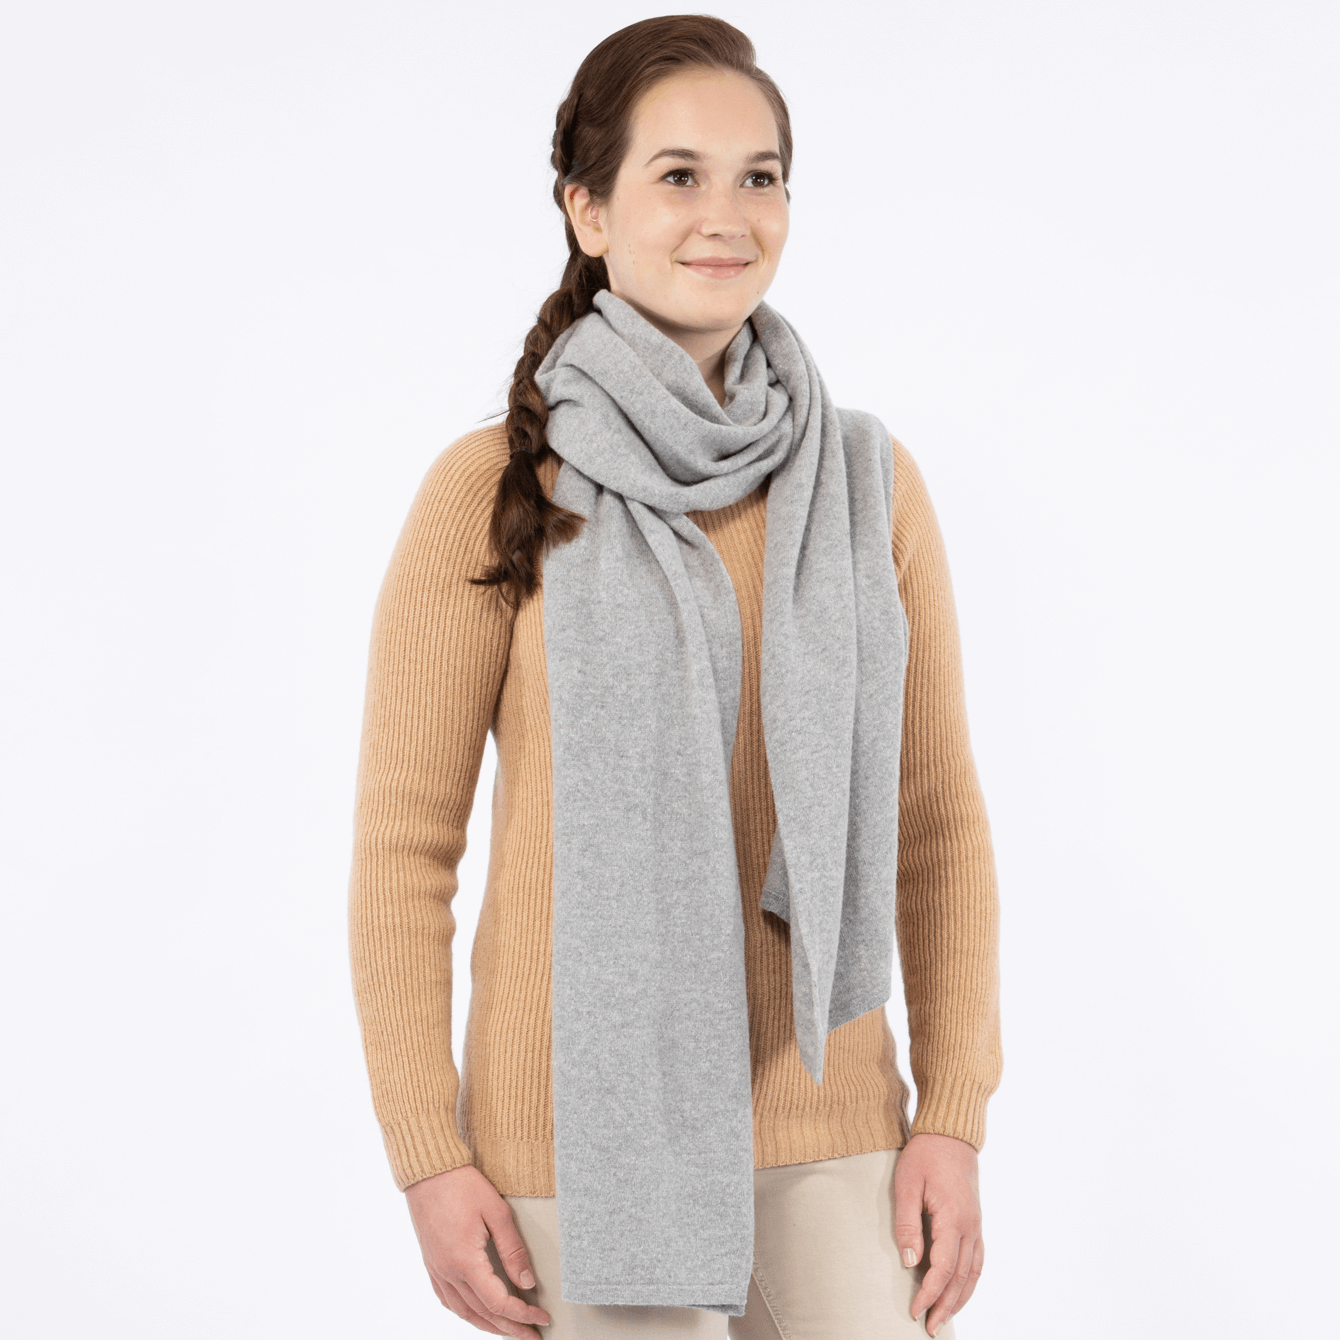 North Outdoor - NILA Scarf - 100 % Merino Wool - Made in Finland - Weekendbee - sustainable sportswear